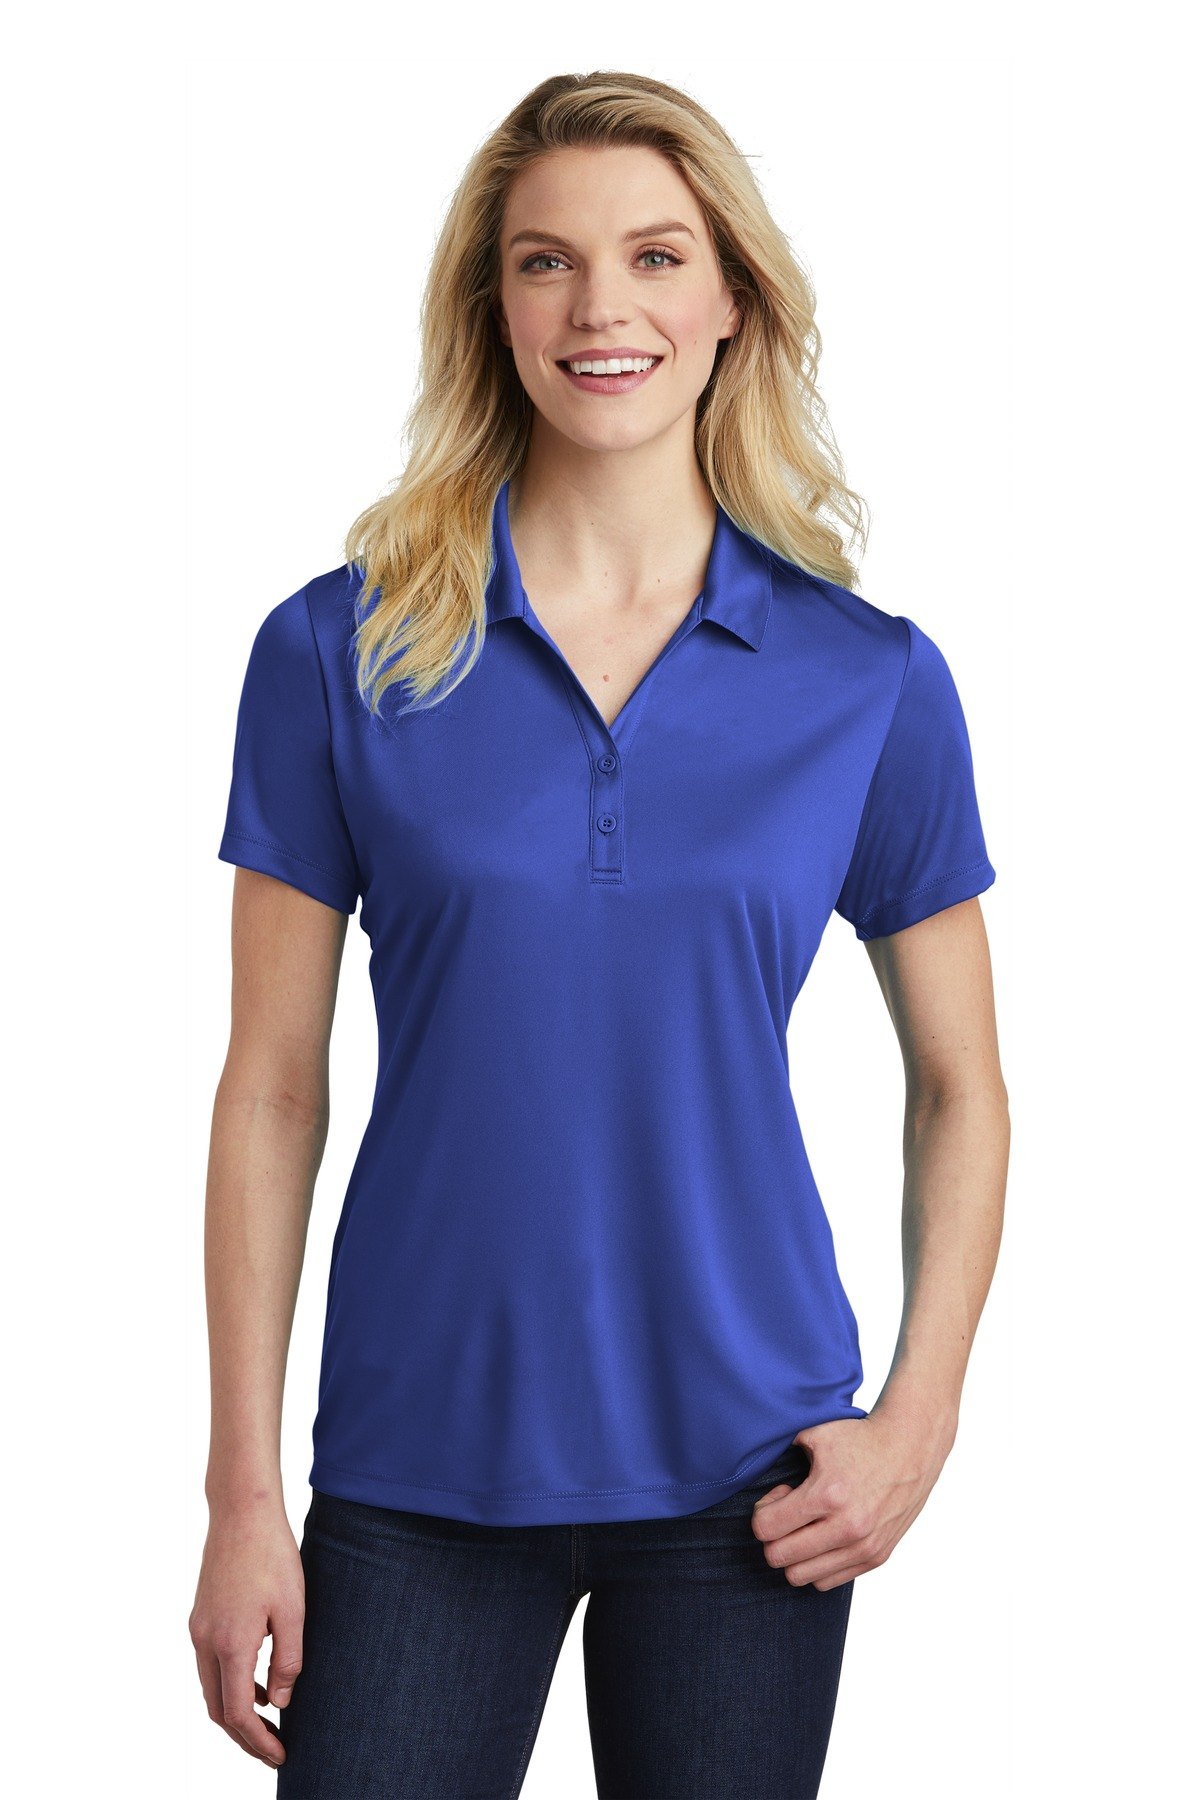 Sport-Tek  ®  Ladies PosiCharge  ®  Competitor  ™  Polo. LST550 - True Royal